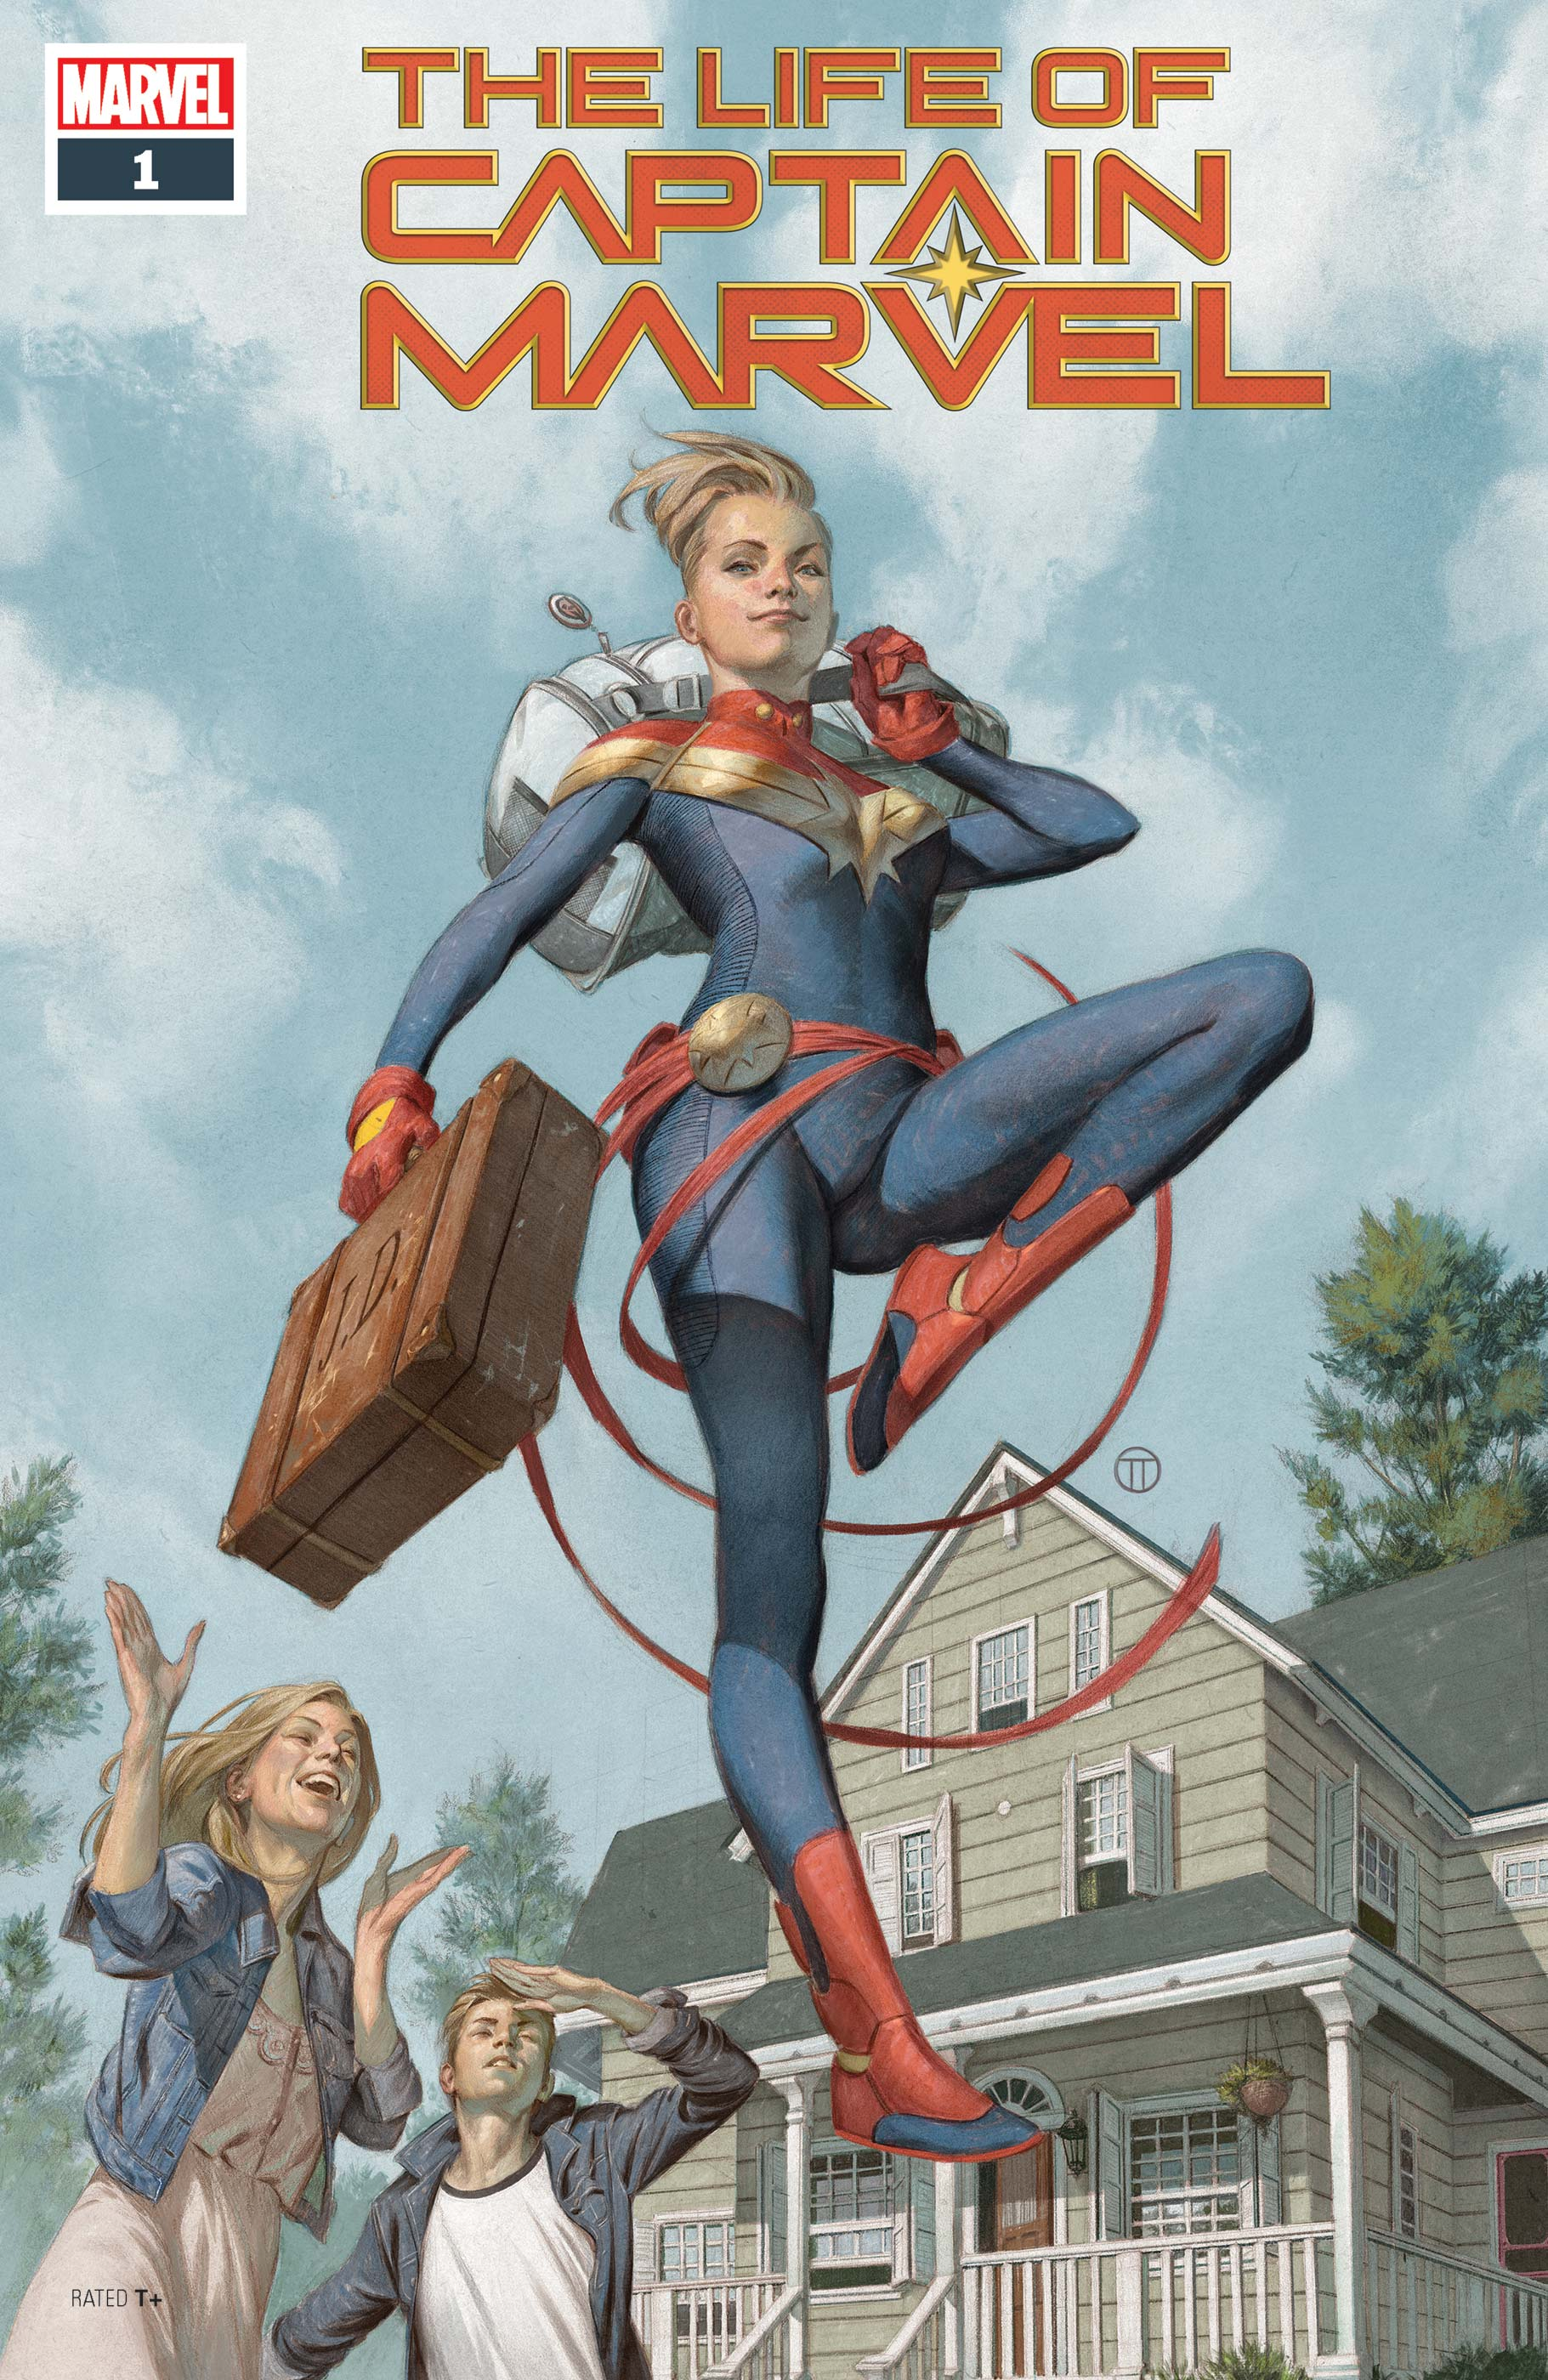 The Life of Captain Marvel  2018   1   Comics   Marvel com The Life of Captain Marvel  2018   1